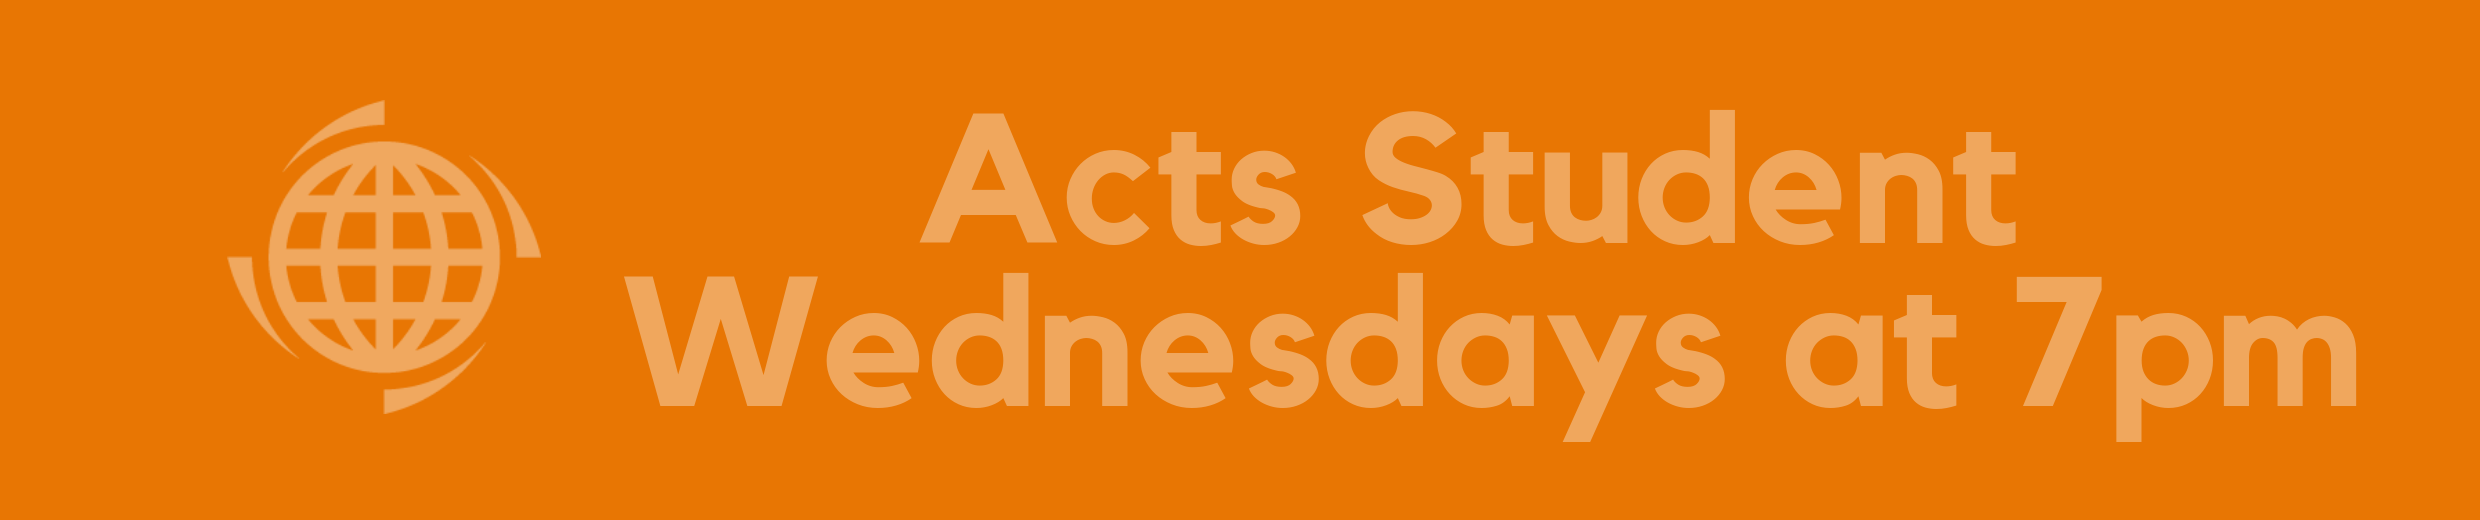 Acts Student time banner